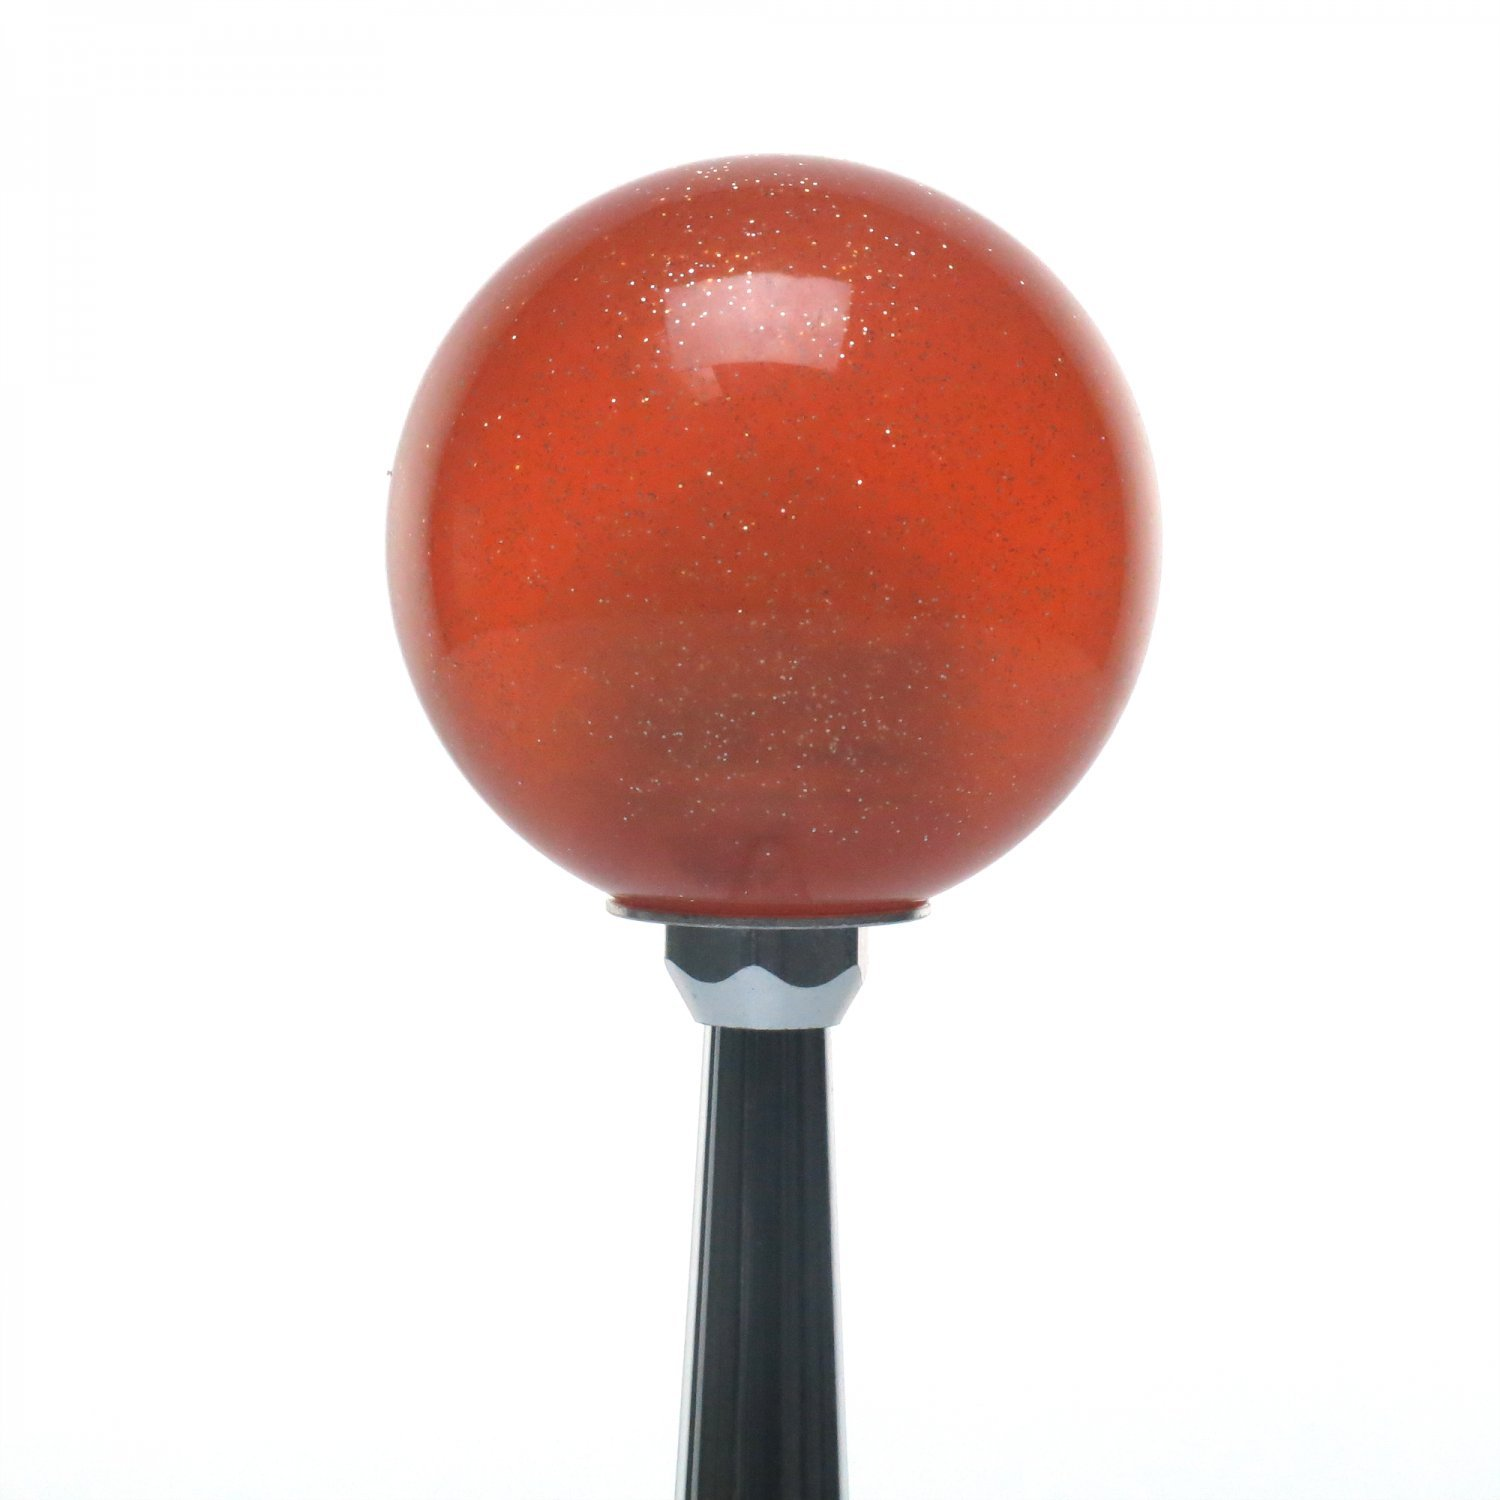 American Shifter 284432 Shift Knob Black Ant Orange Metal Flake with M16 x 1.5 Insert